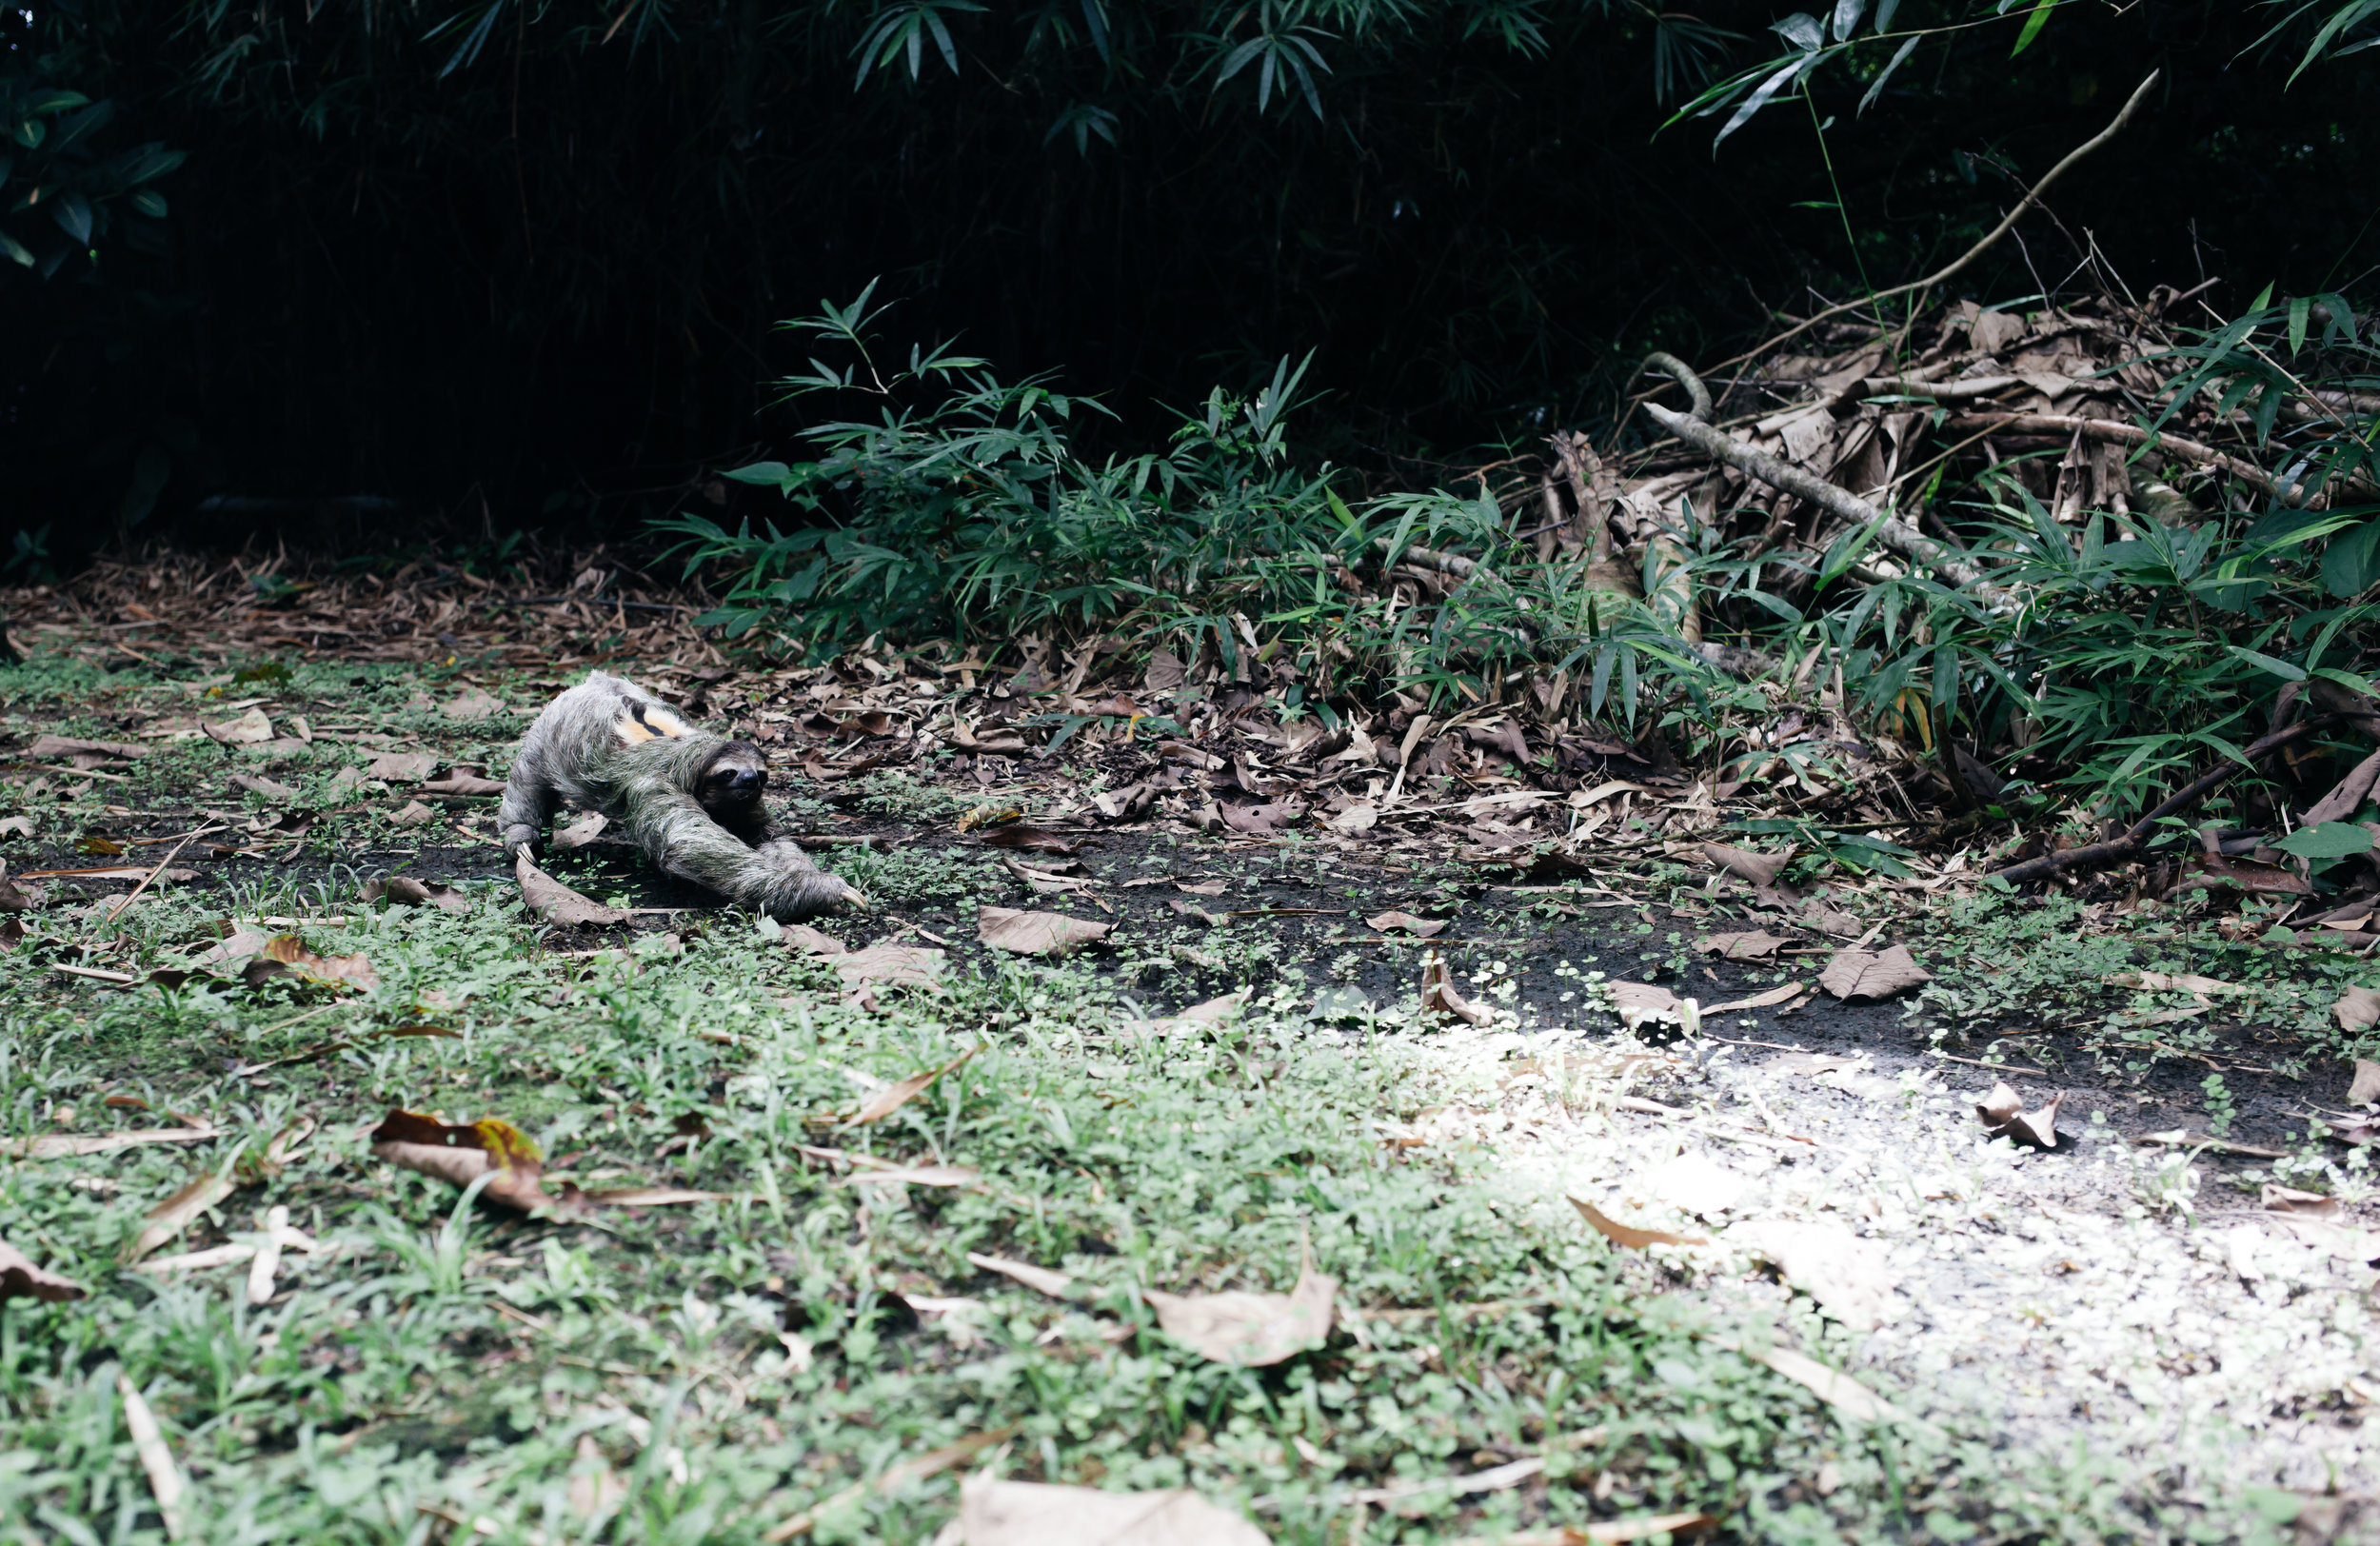 costarica_airbnb_sloth (43 of 49).jpg